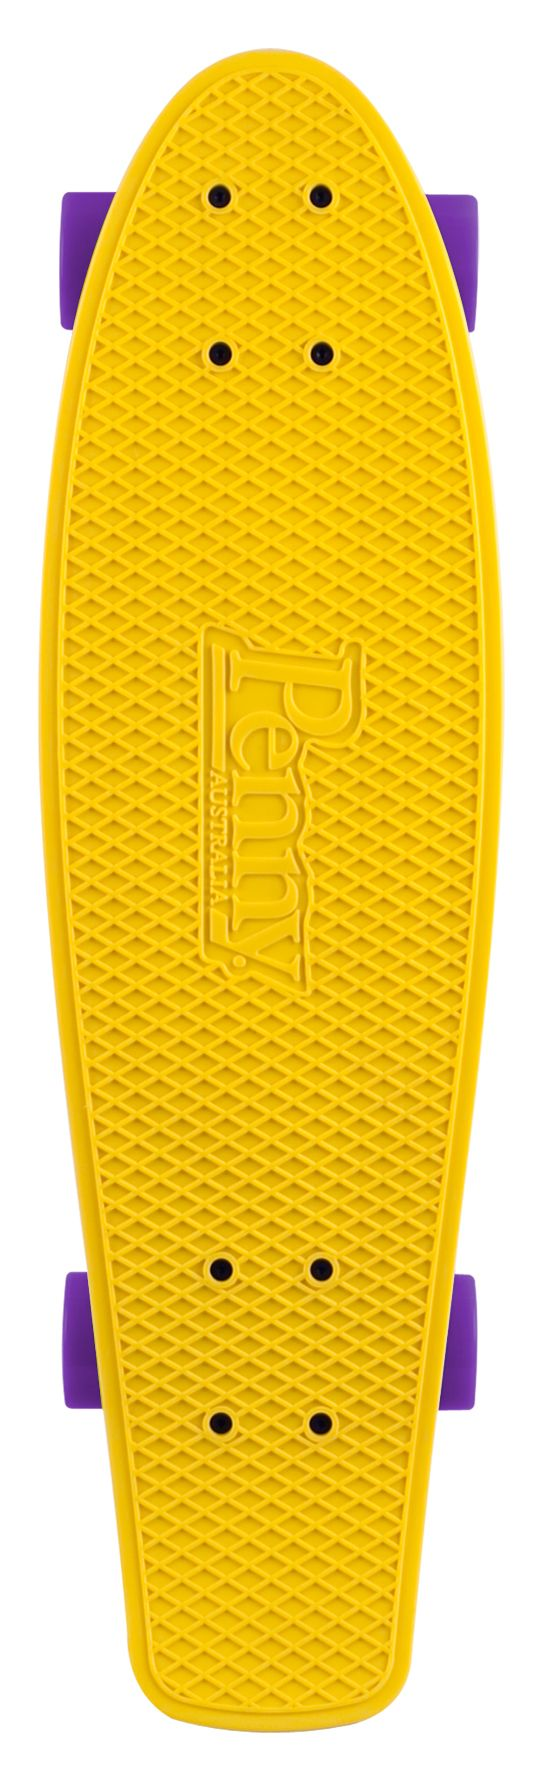 "Nickel 27"" Skateboard YELLOW/CYAN/PUR"